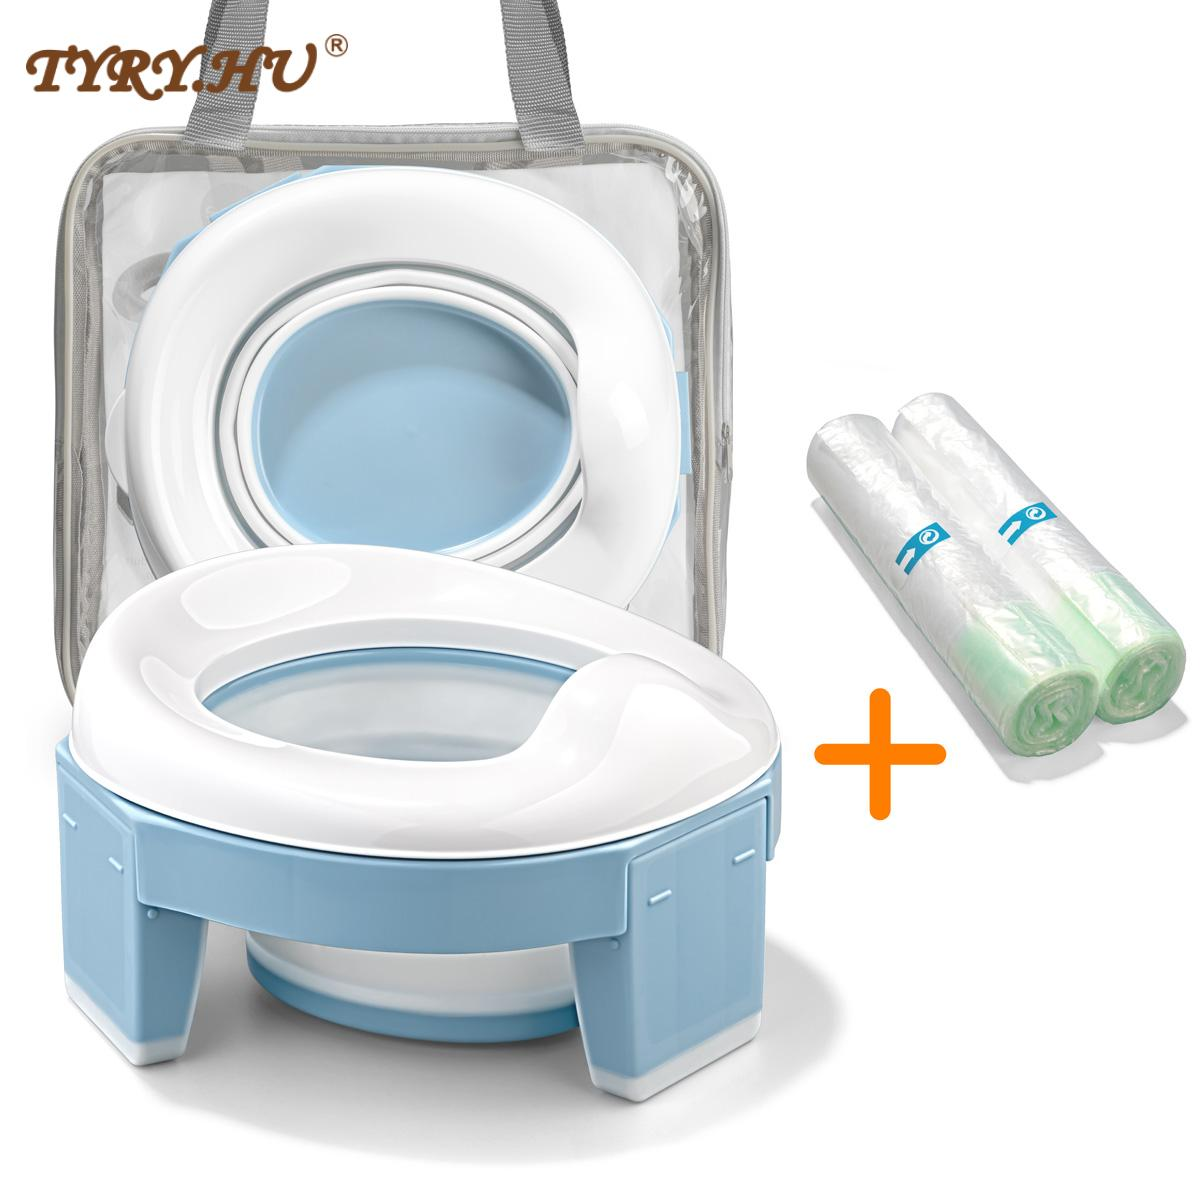 TYRY.HU Baby Pot Portable Silicone Baby Potty Training Seat 3 in 1 Travel Toilet Seat Foldable Blue Pink Children Potty With Bag